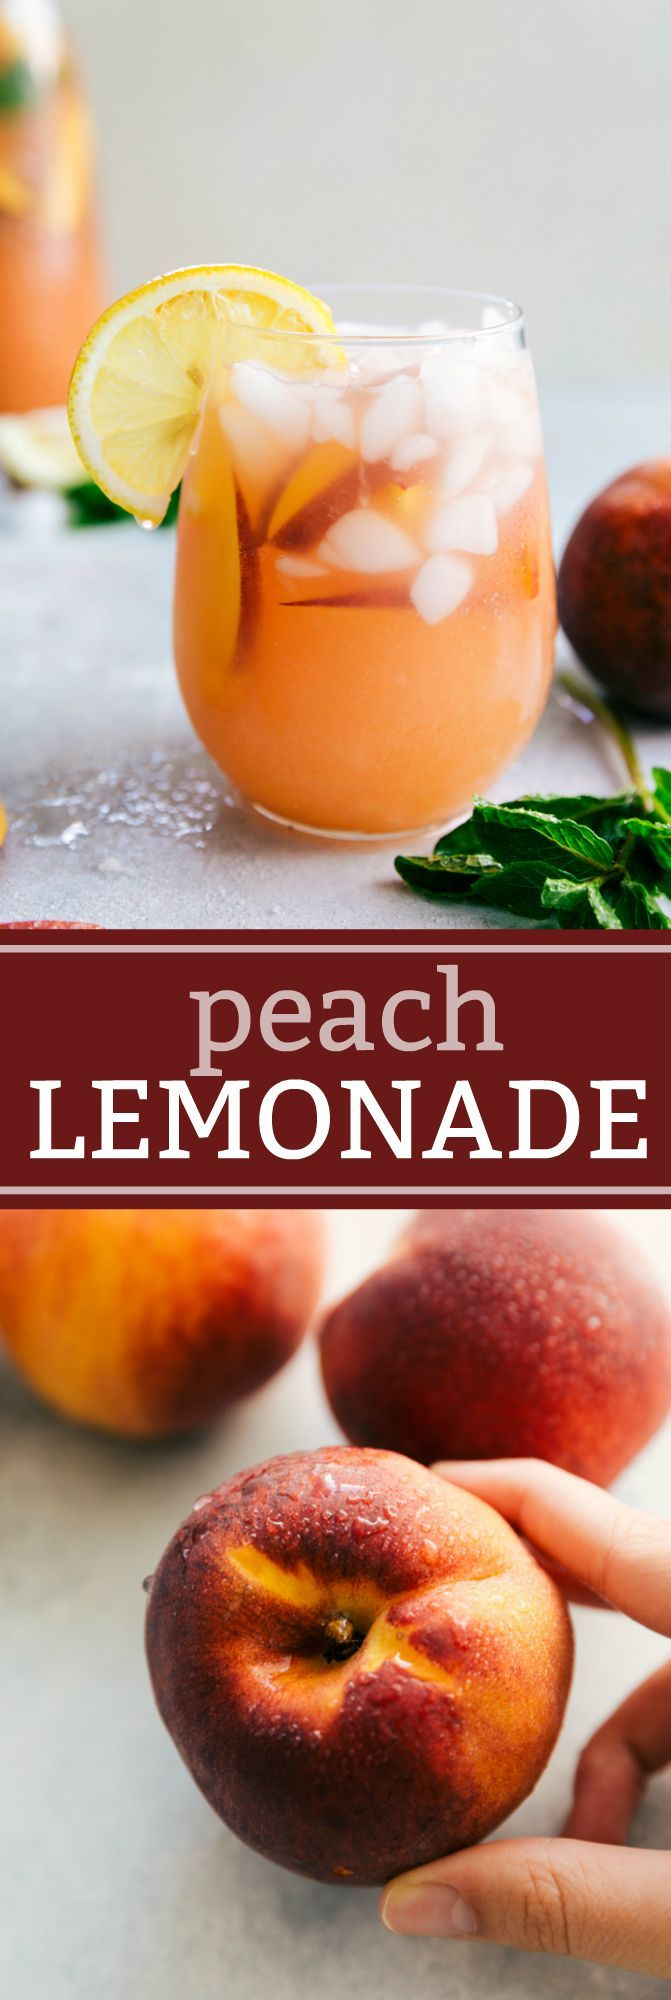 This naturally sweetened and healthier Peach Lemonade is so delicious and refreshing! Plus it's simple to make and stores for up to a week in the fridge!